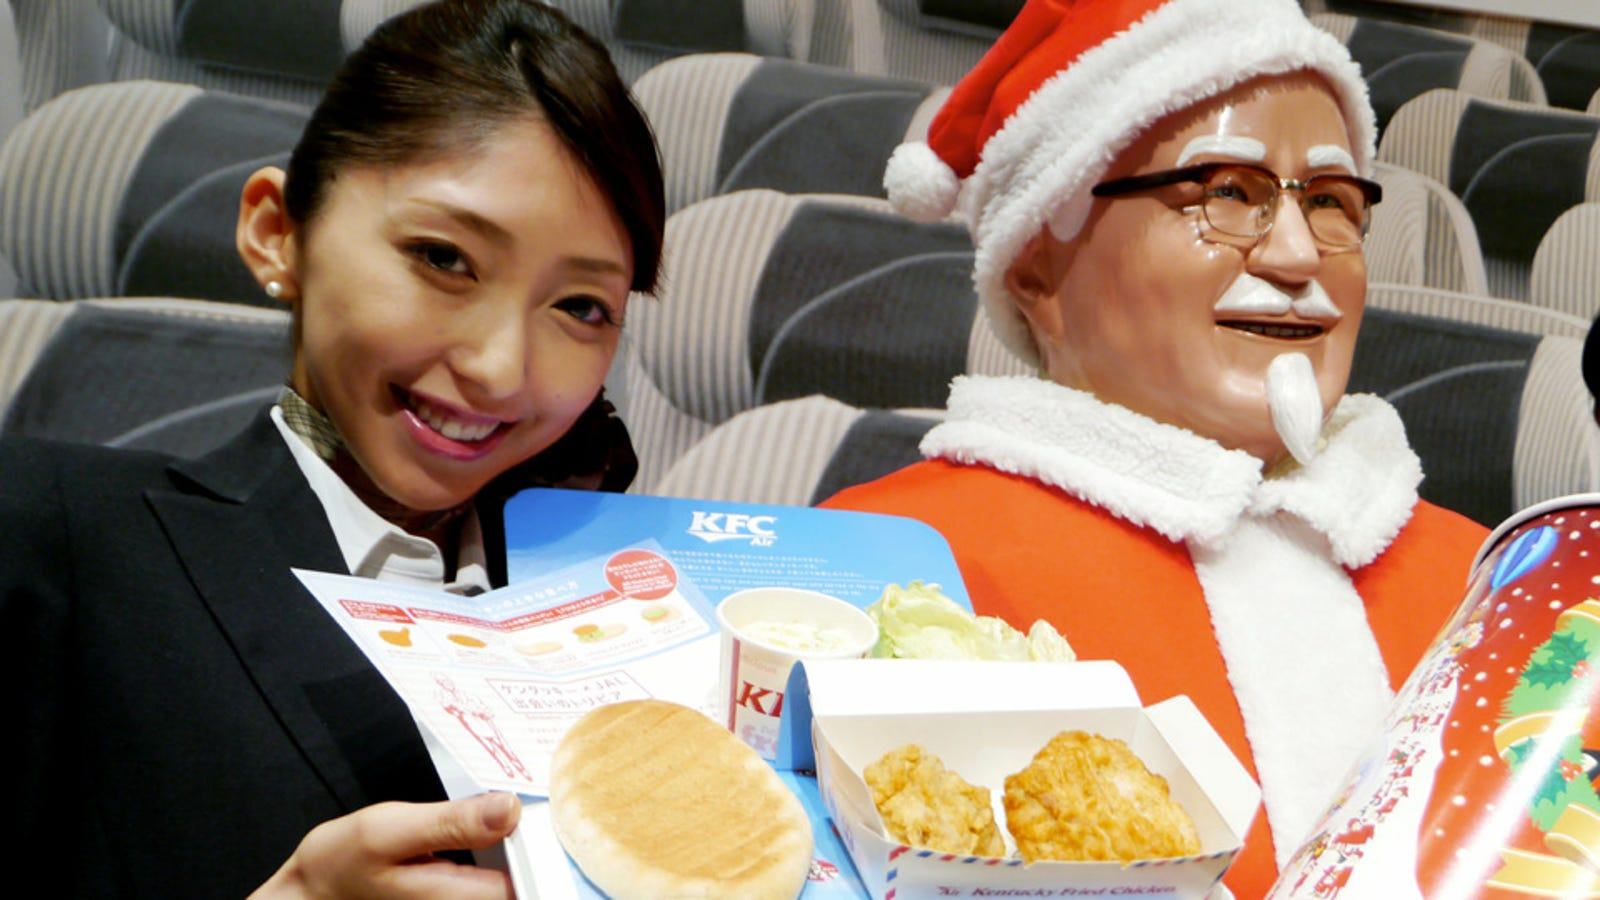 Soon, You Can Eat Kentucky Fried Chicken on Japan Airlines